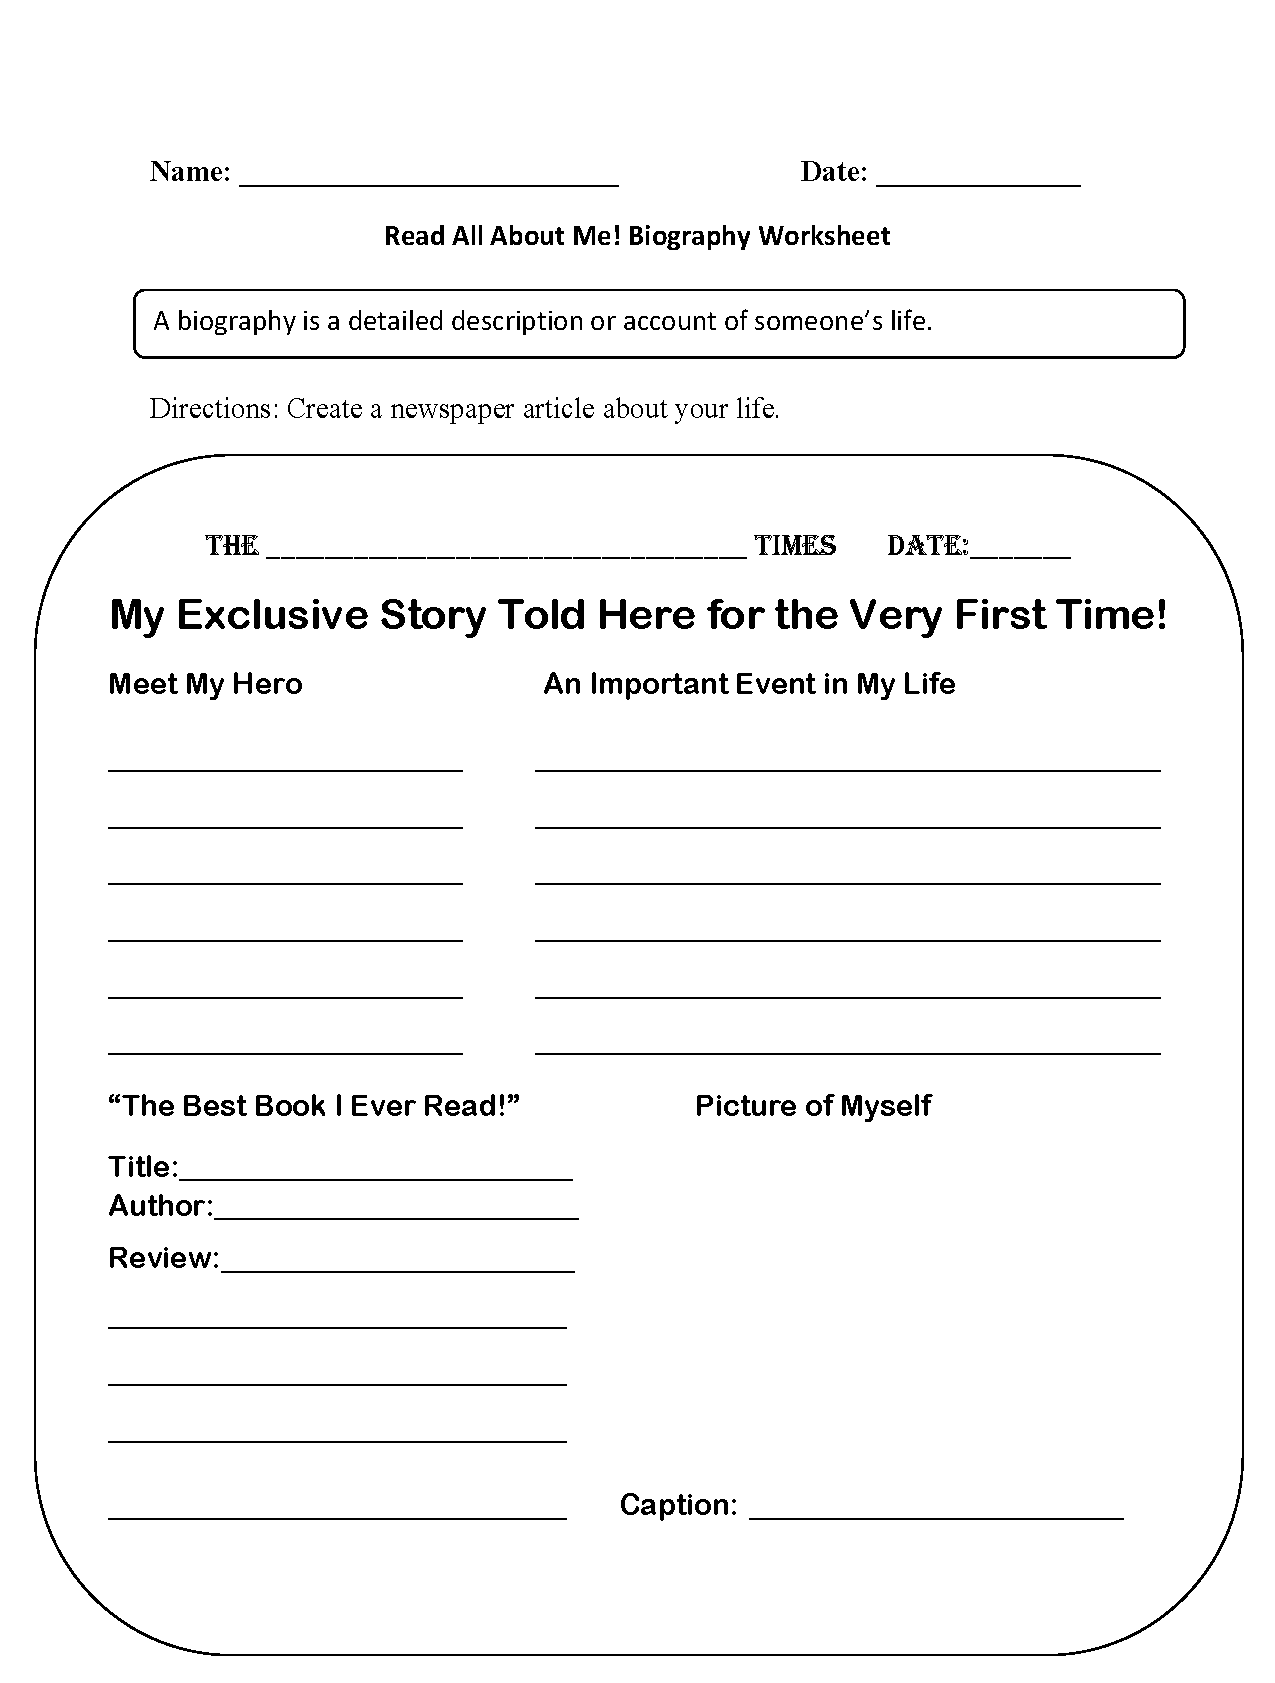 small resolution of Read All About Me Back to School Worksheets   School worksheets